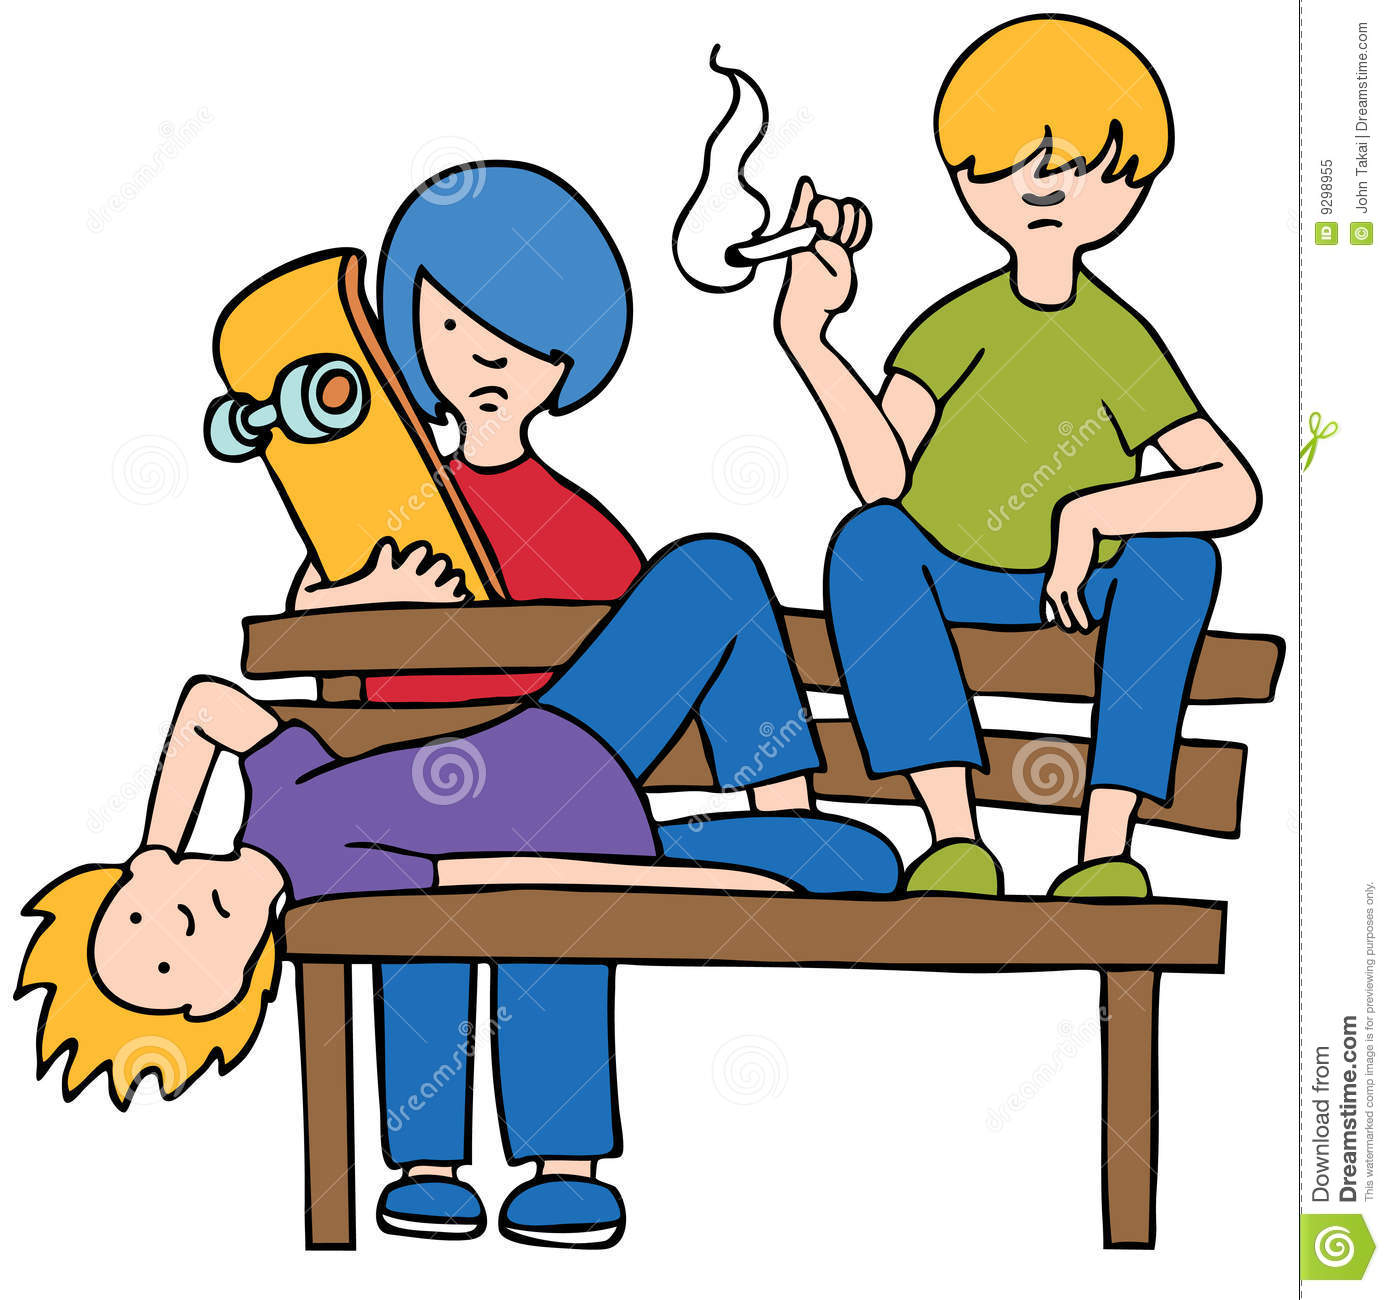 Boys clipart bored.  collection of kids